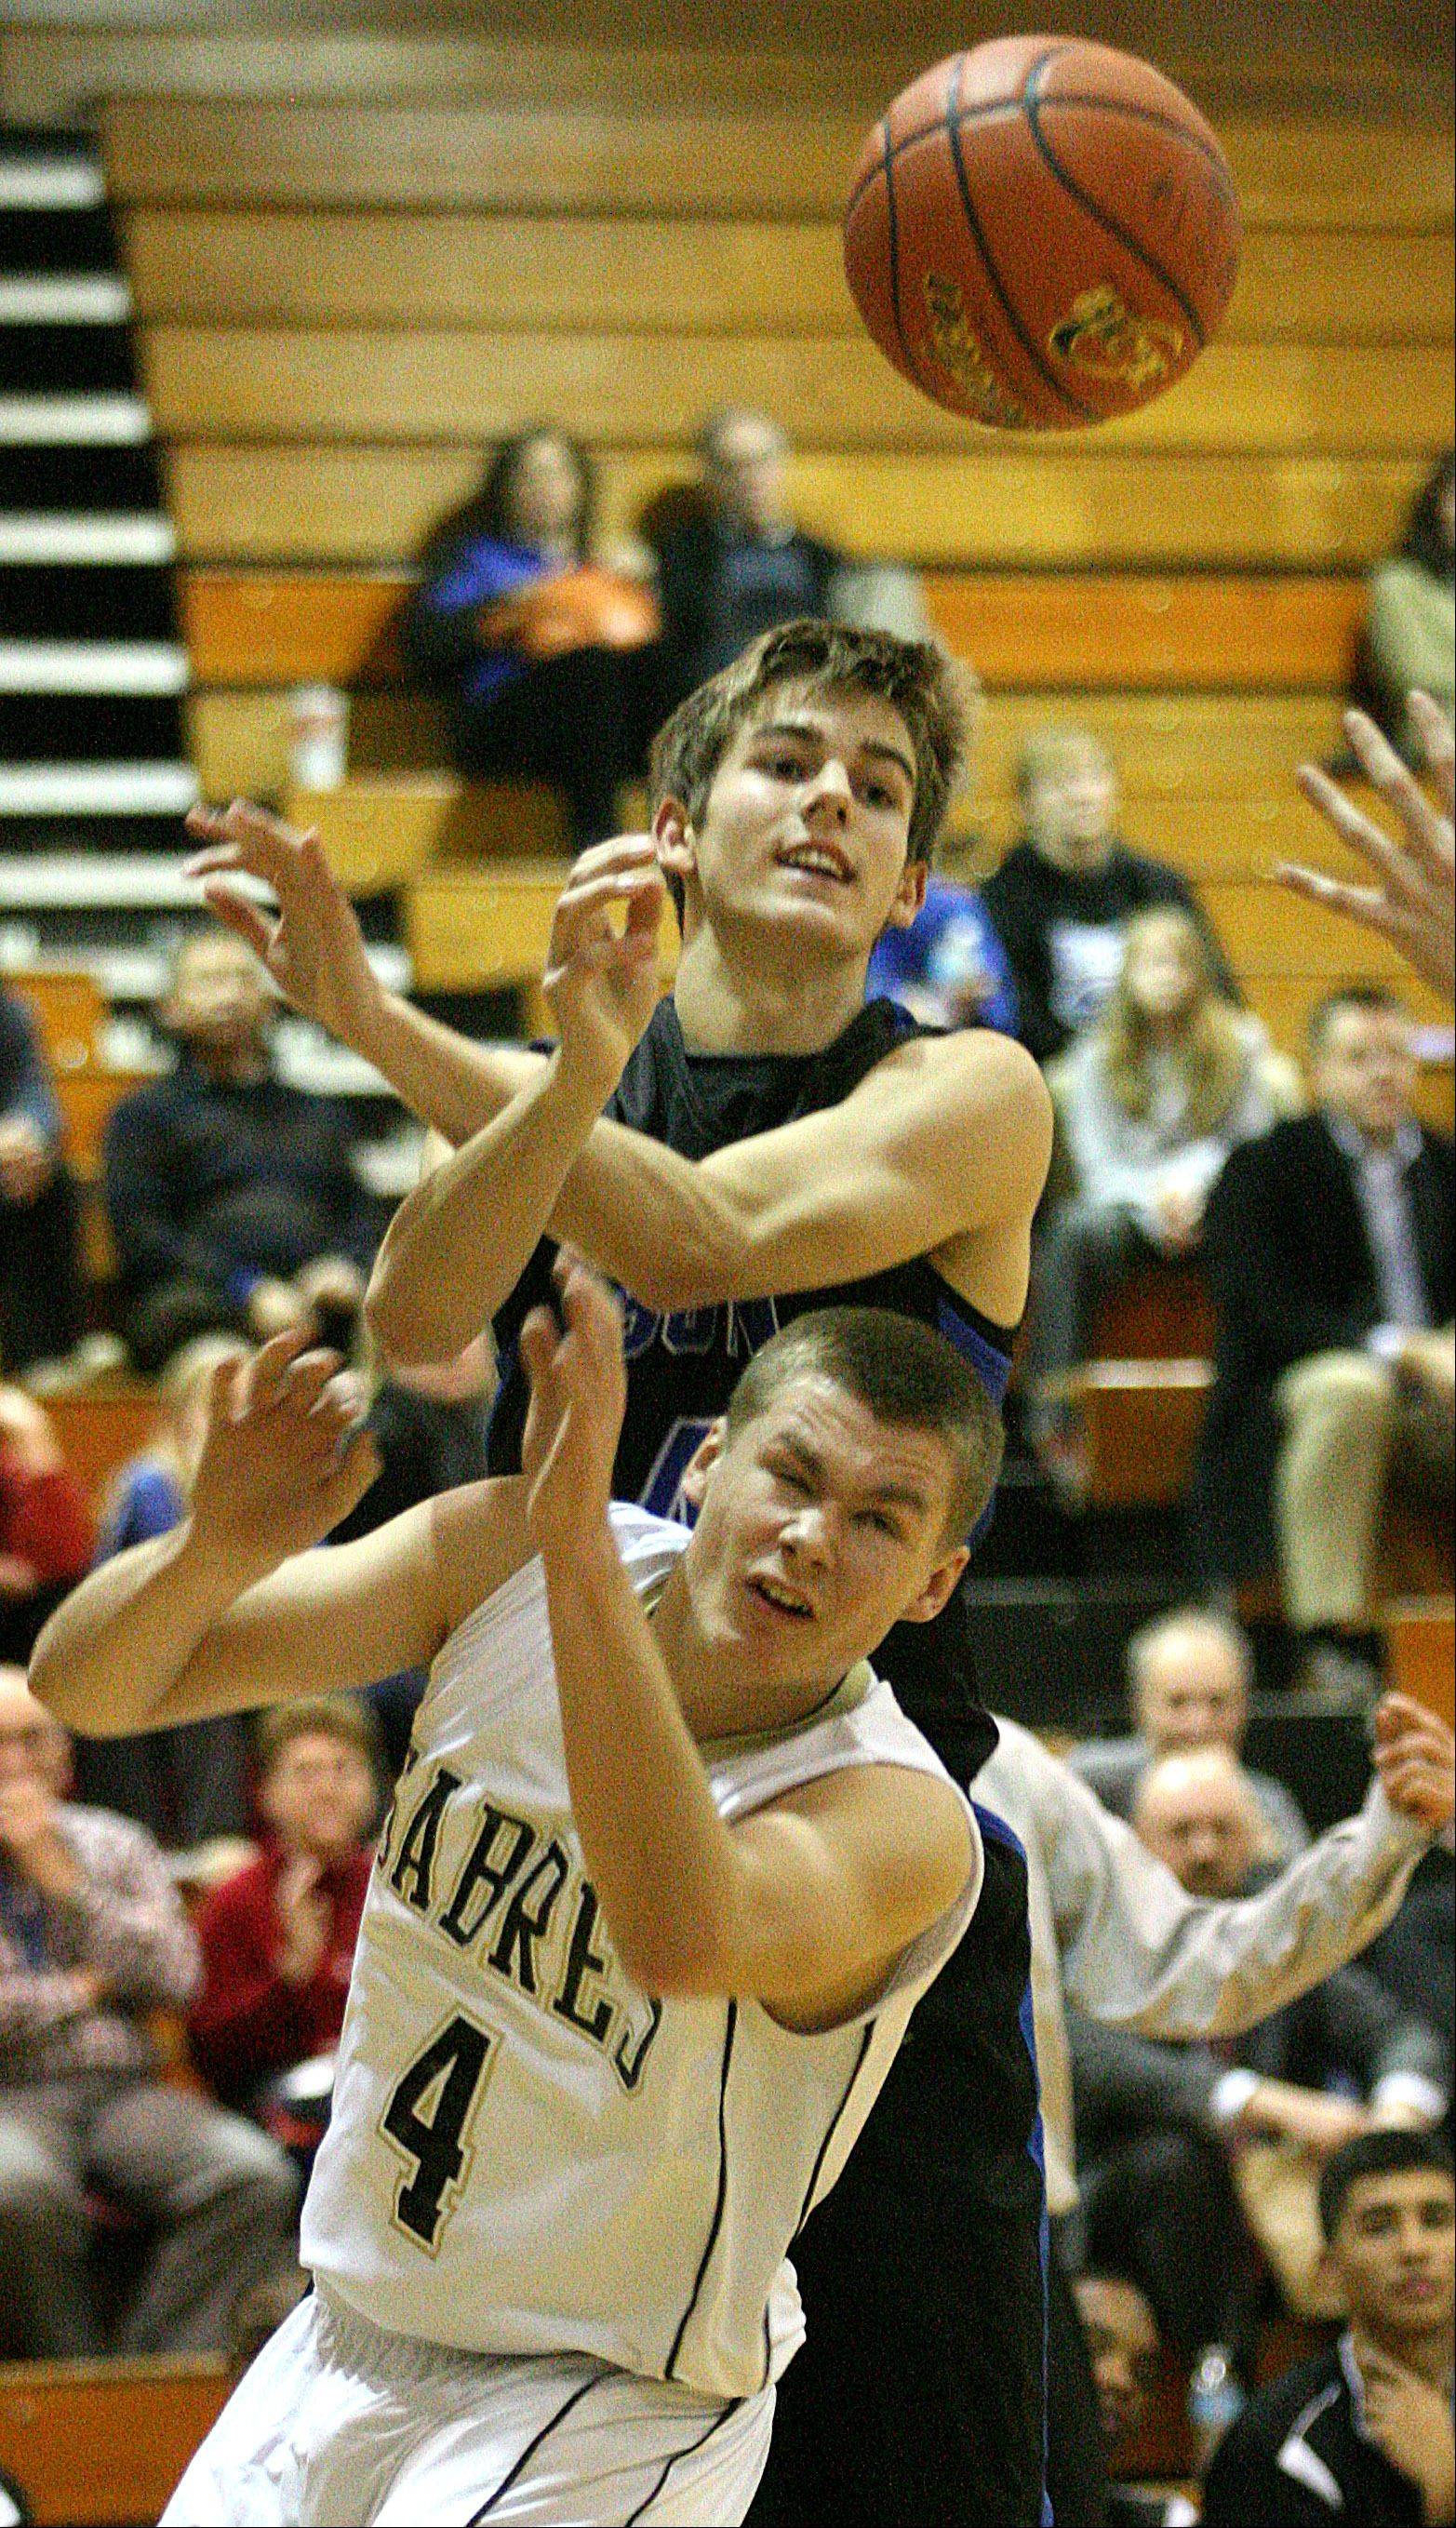 Streamwood's Jacob Siewert, bottom, and St Charles North's Jake Ludwig look for the ball.